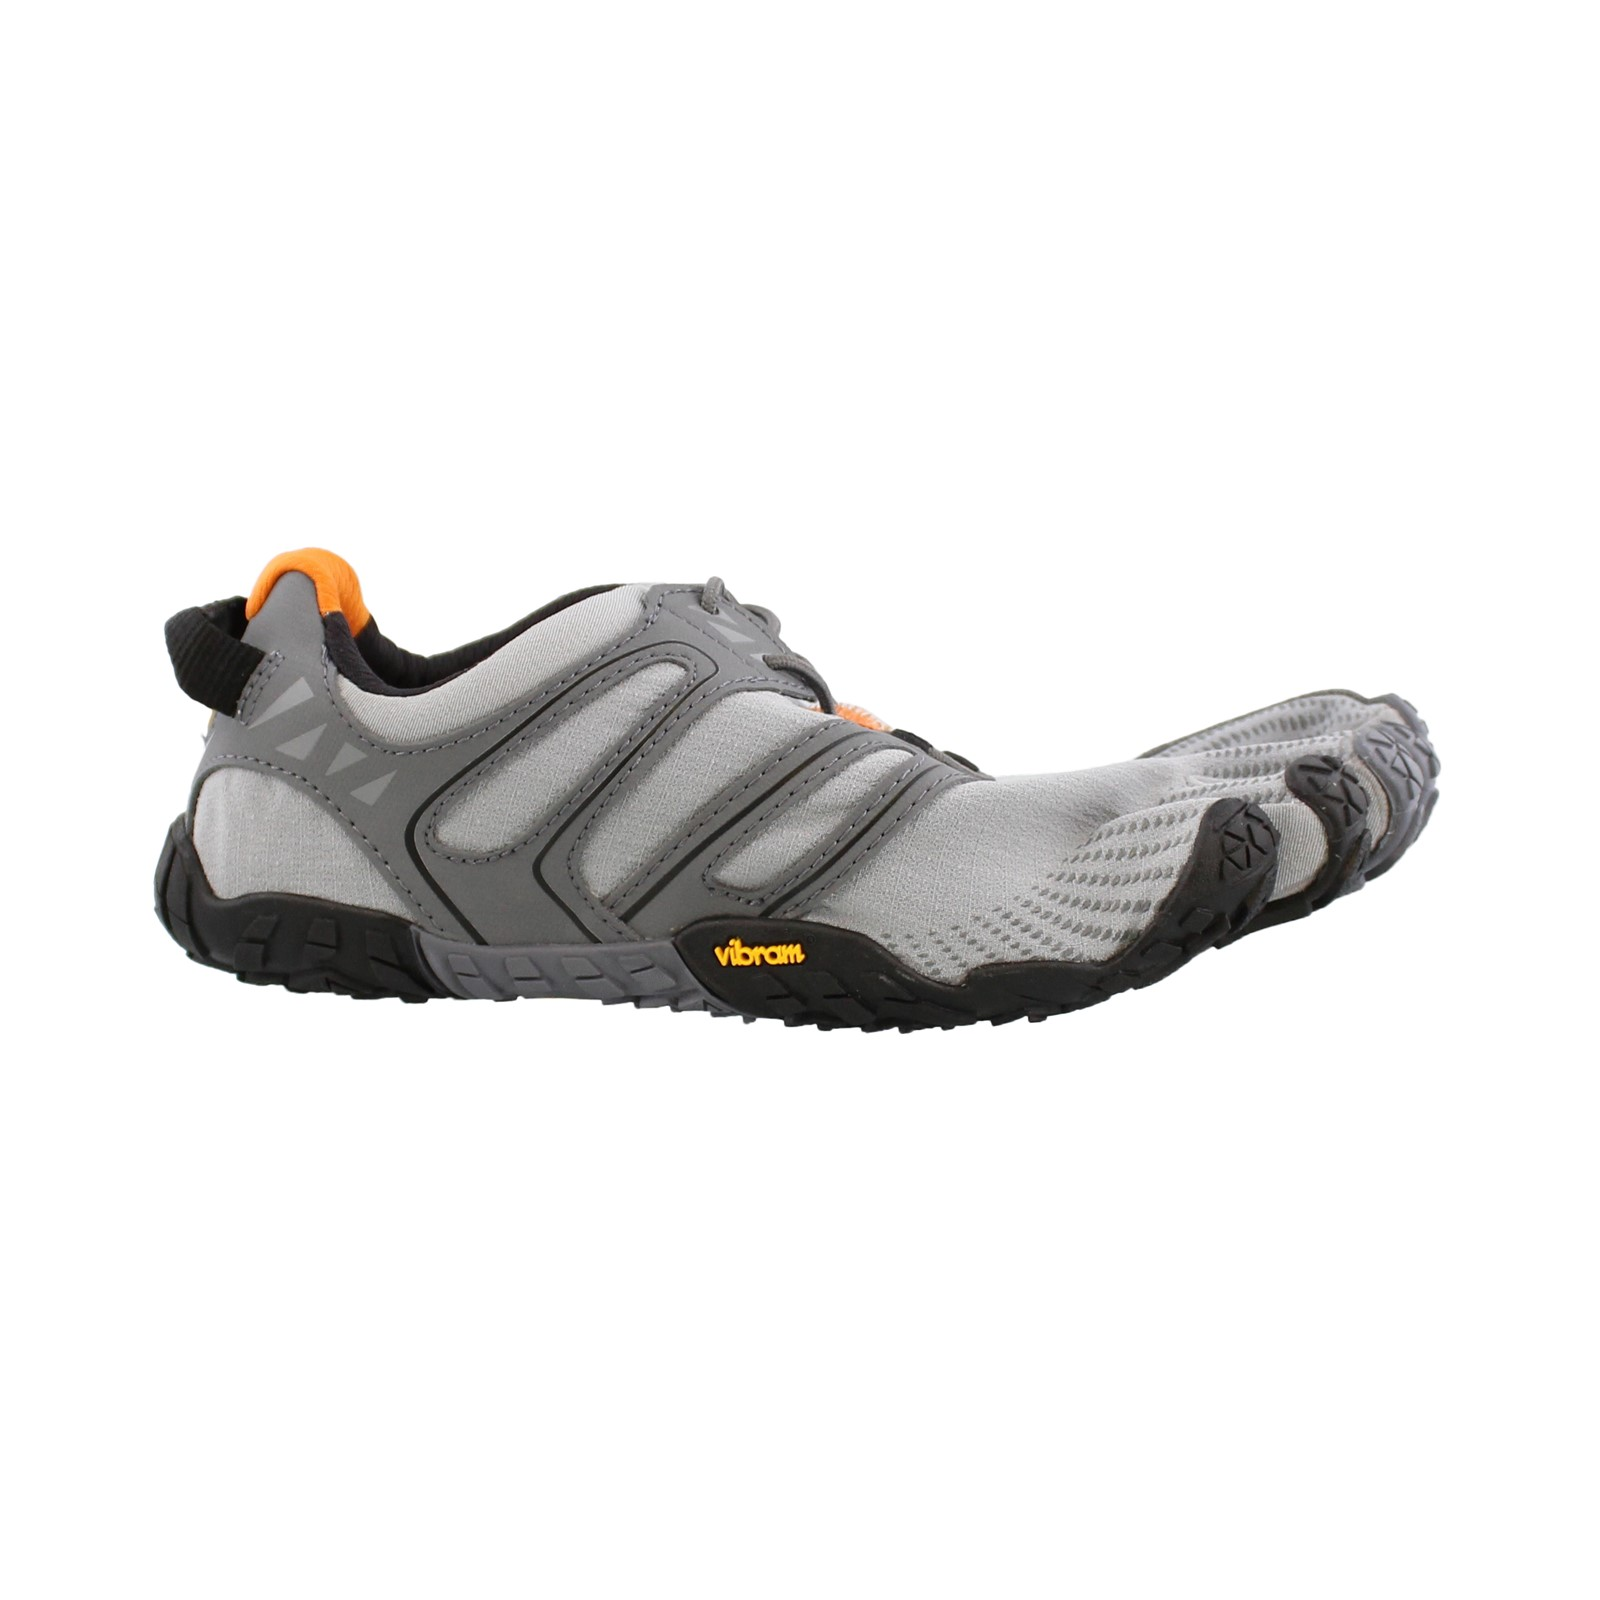 Men's Vibram FiveFingers, V Trail Running Shoes